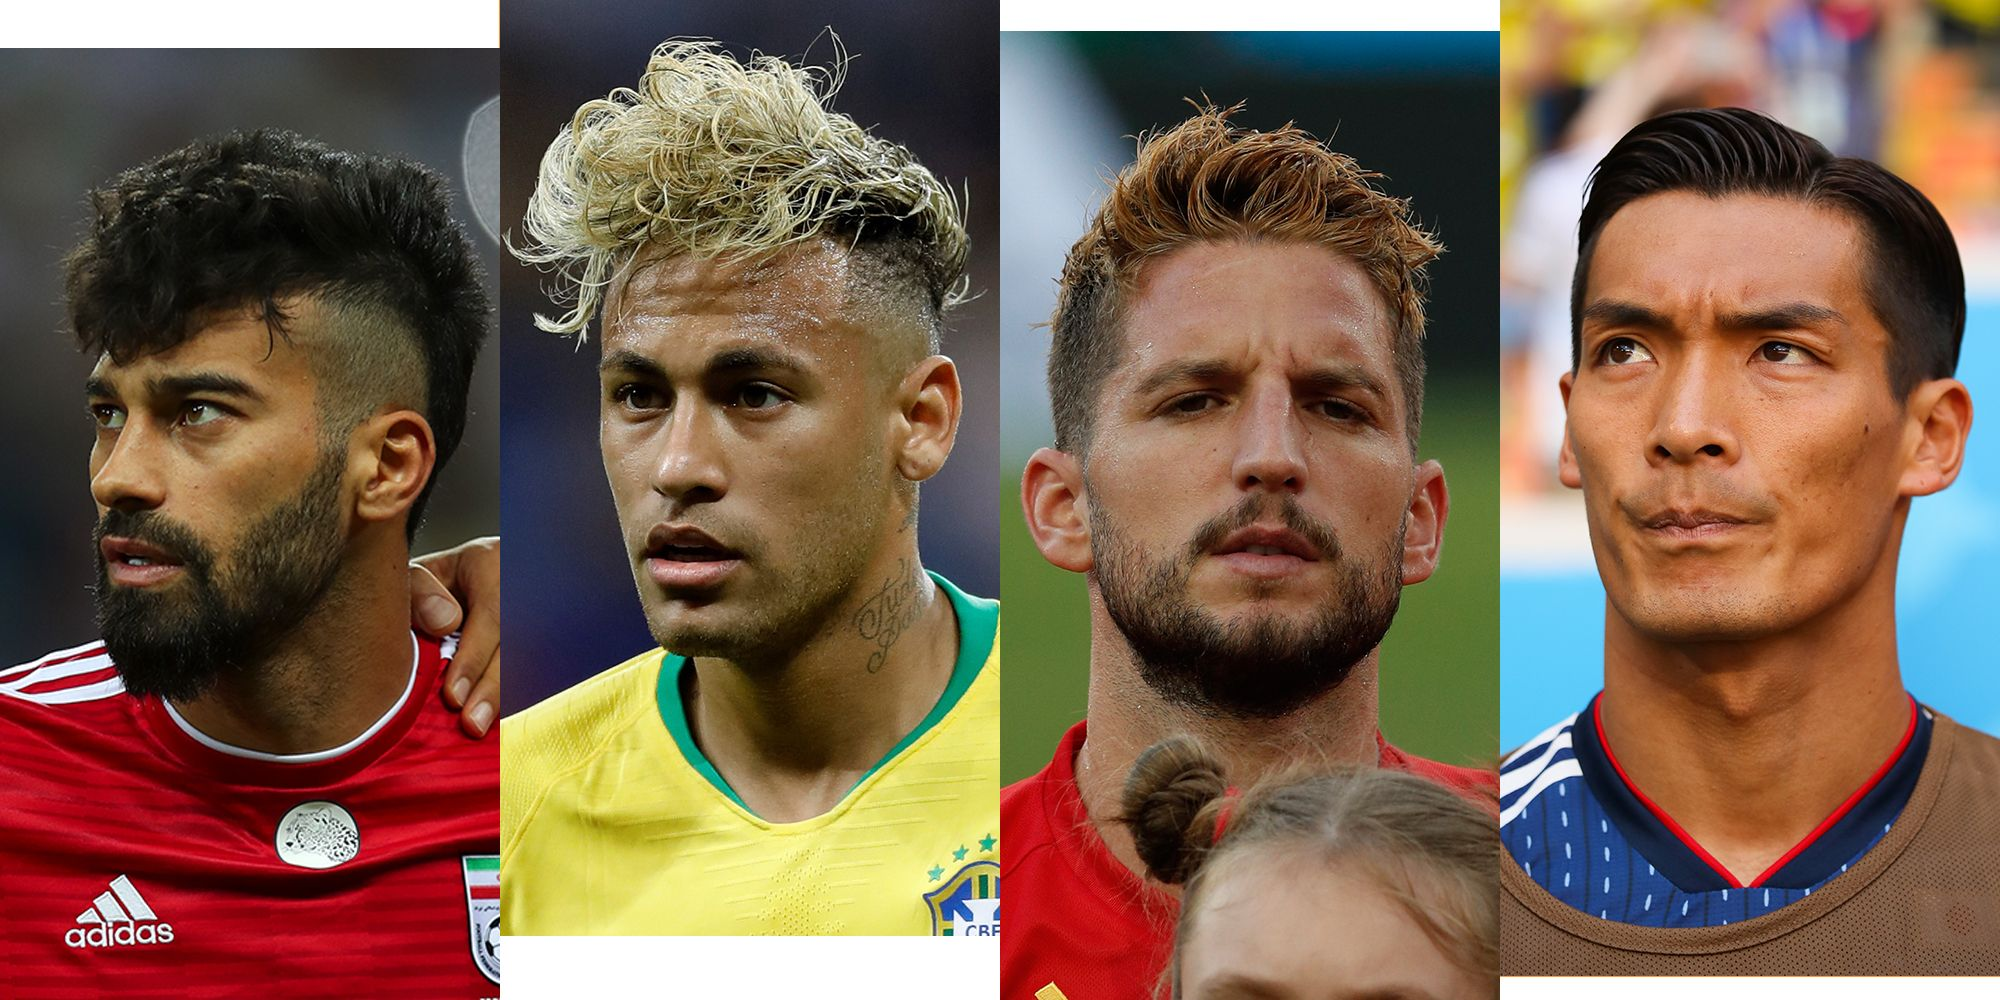 World cup 2018 haircuts